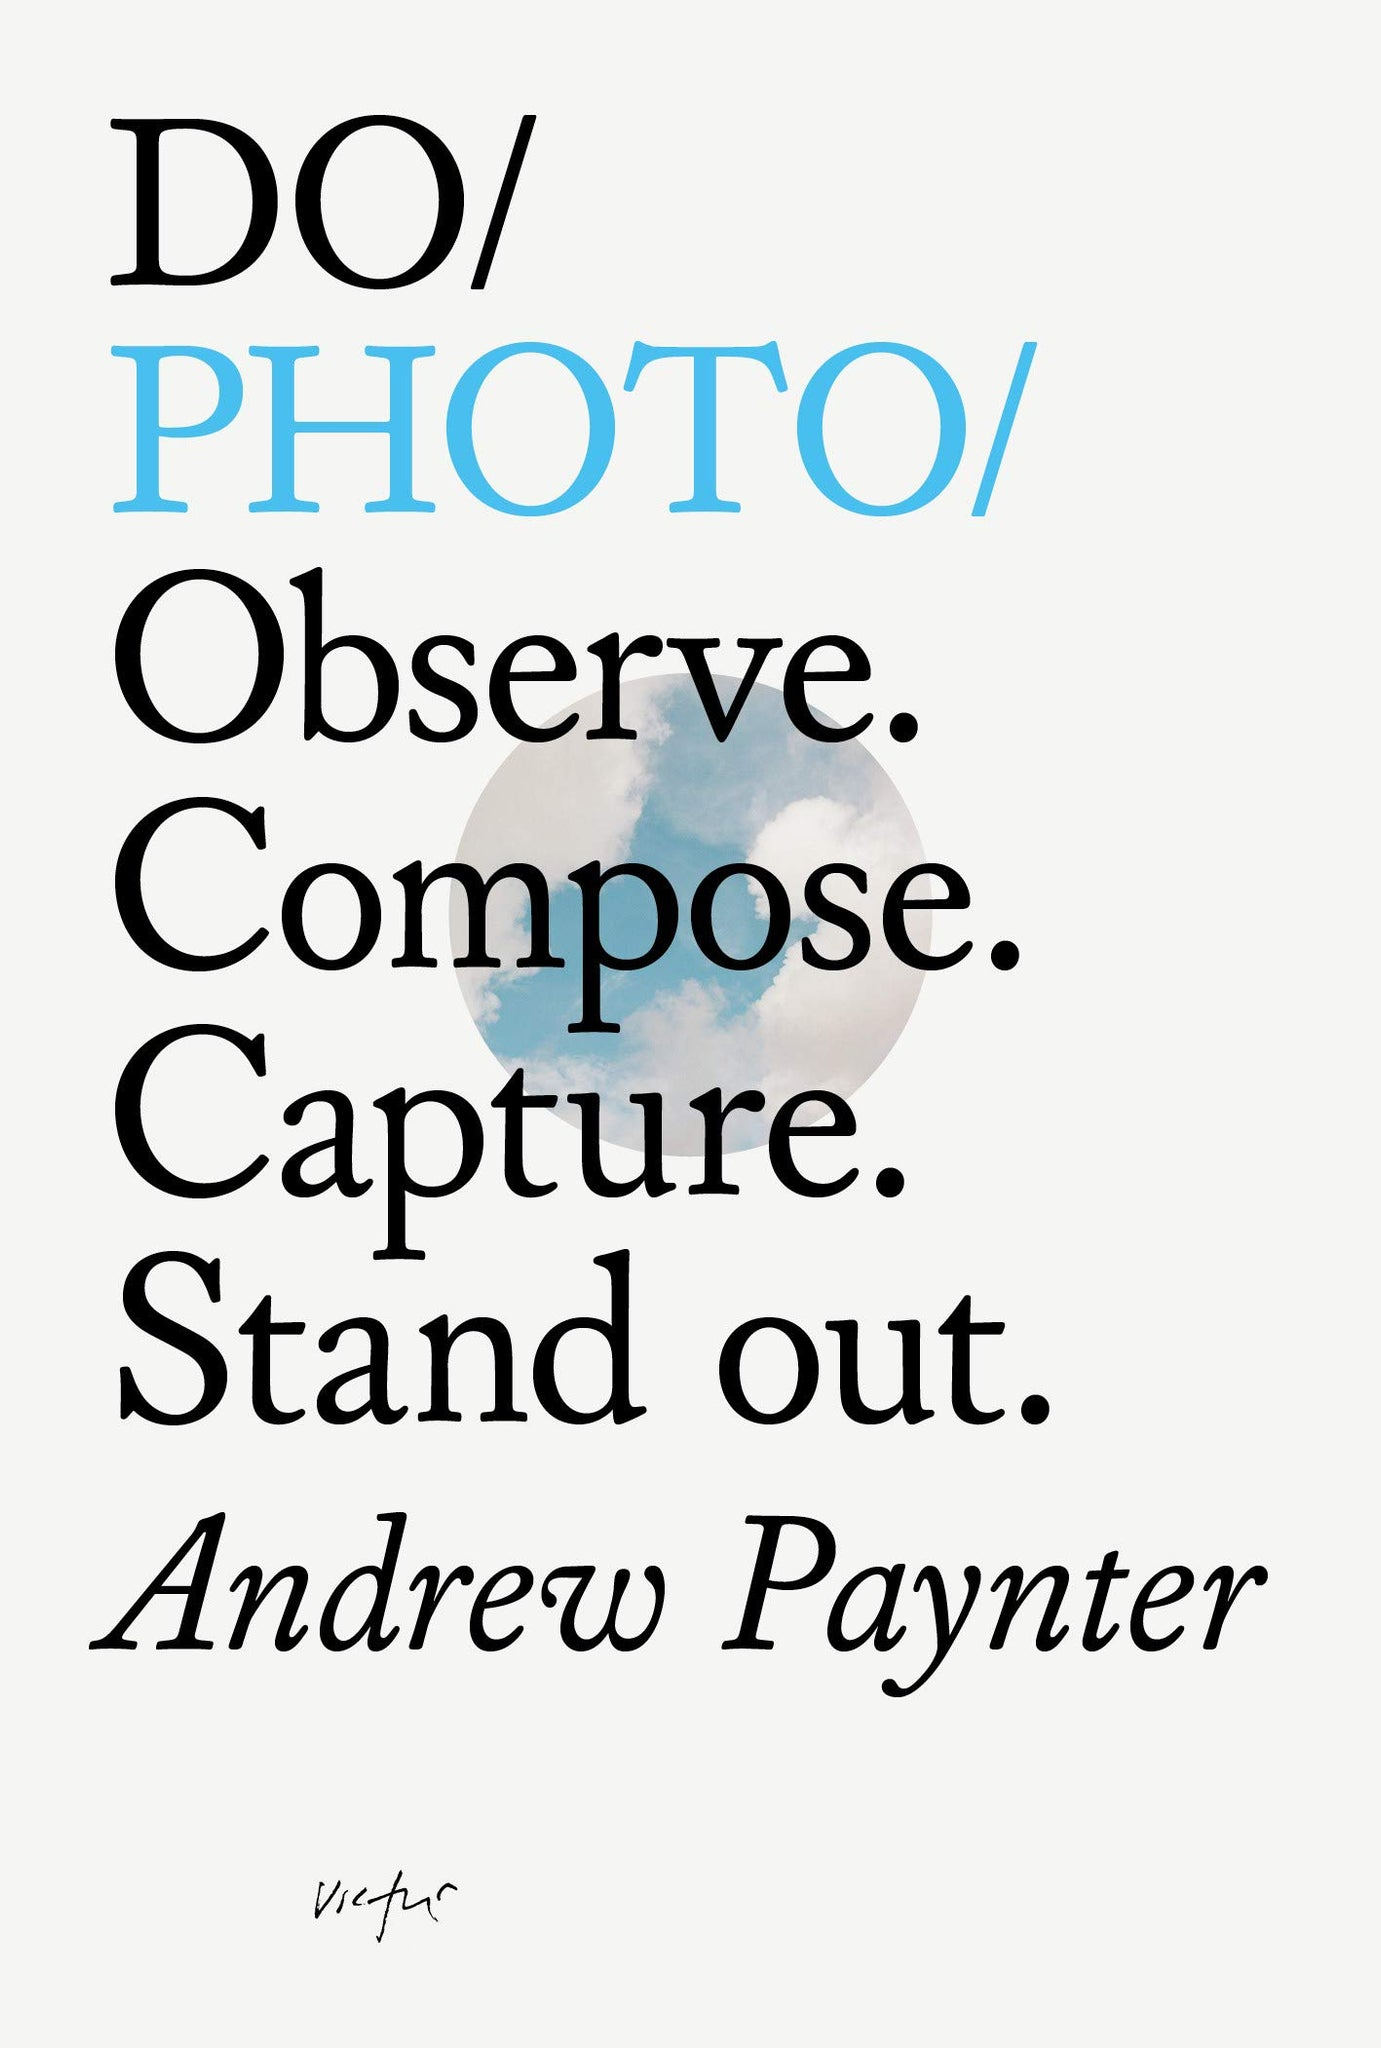 Do Photo: Observe. Compose. Capture. Stand Out.